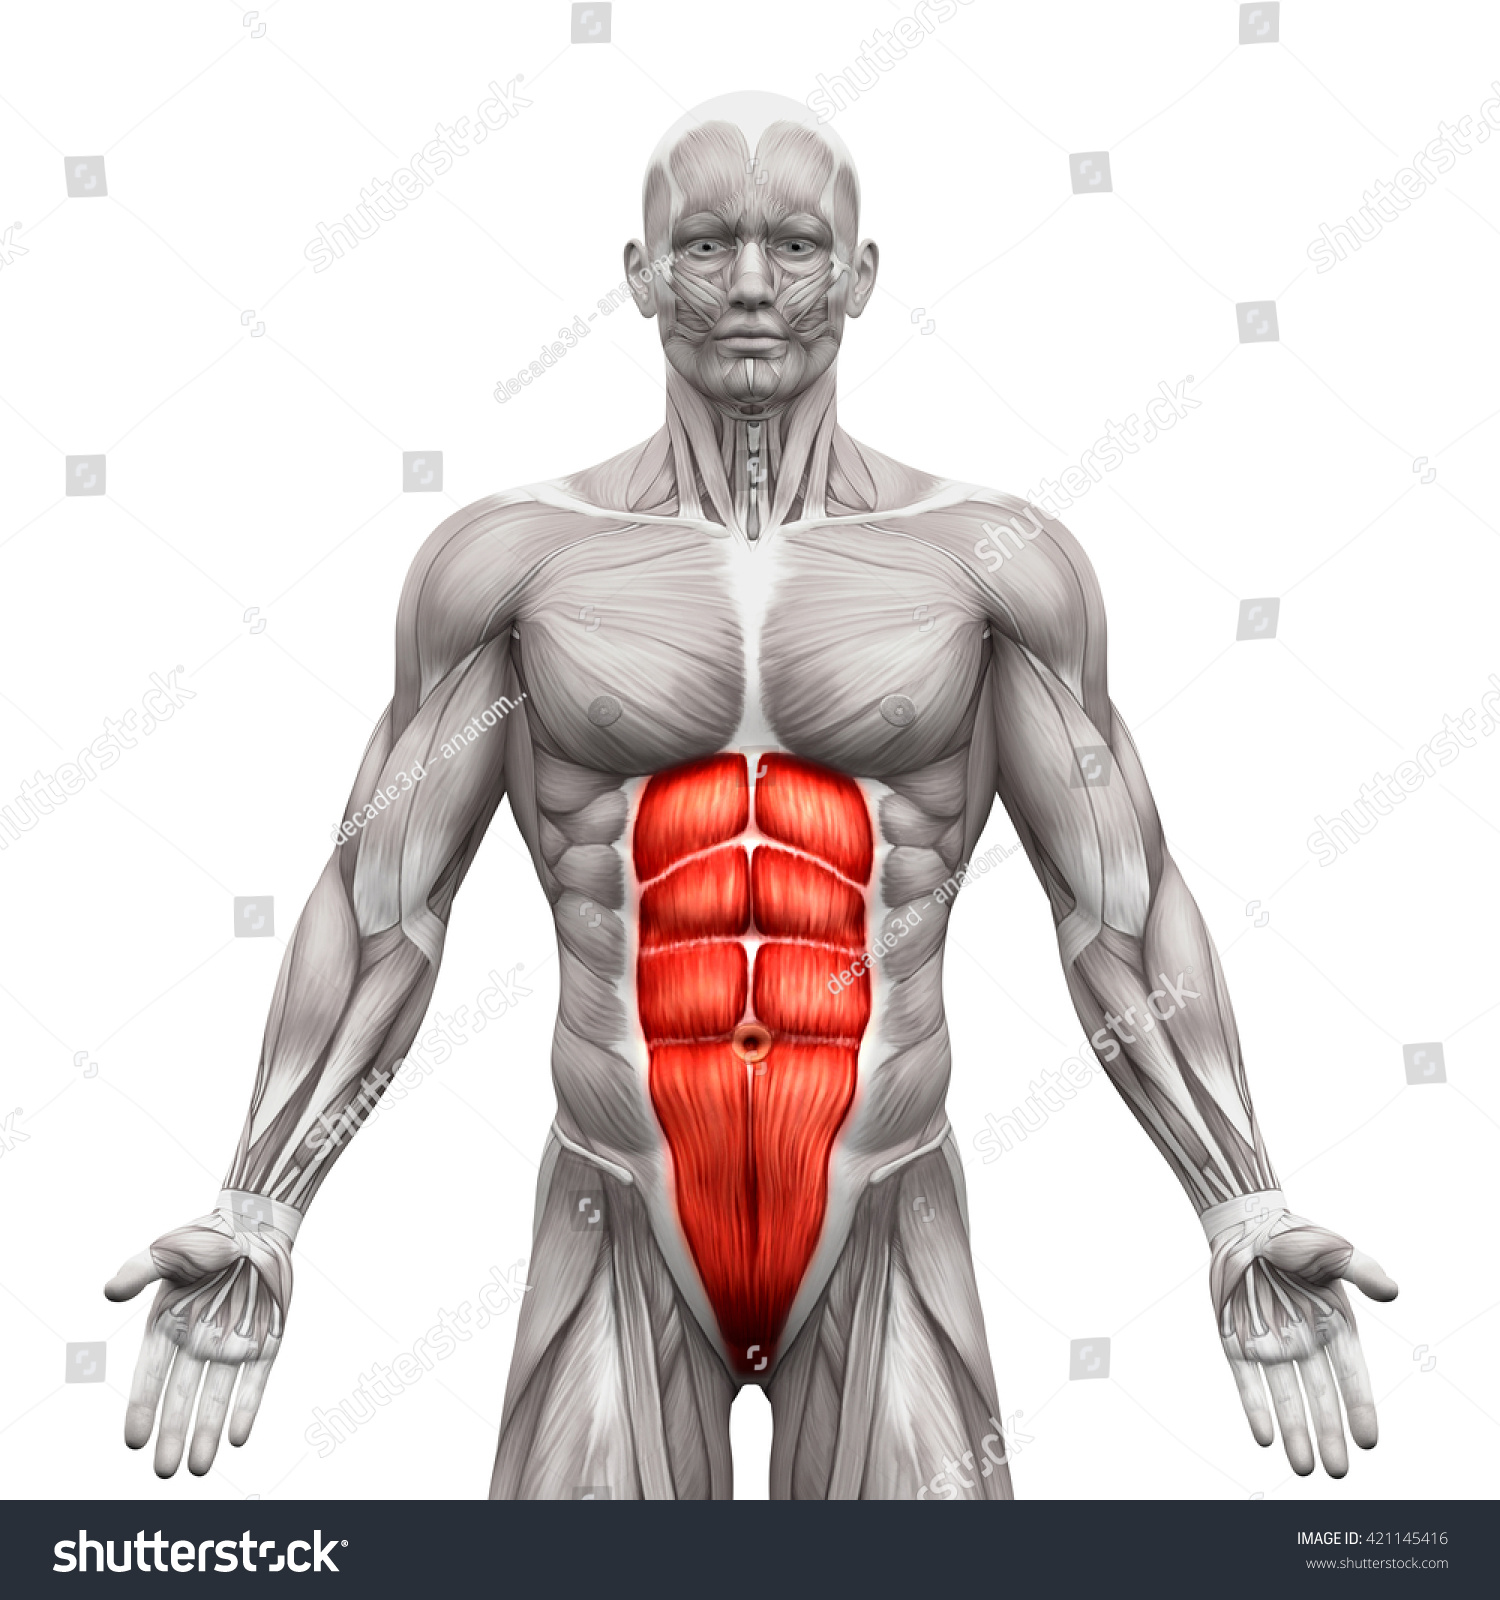 Similar Images, Stock Photos & Vectors of Rectus Abdominis Anatomy ...